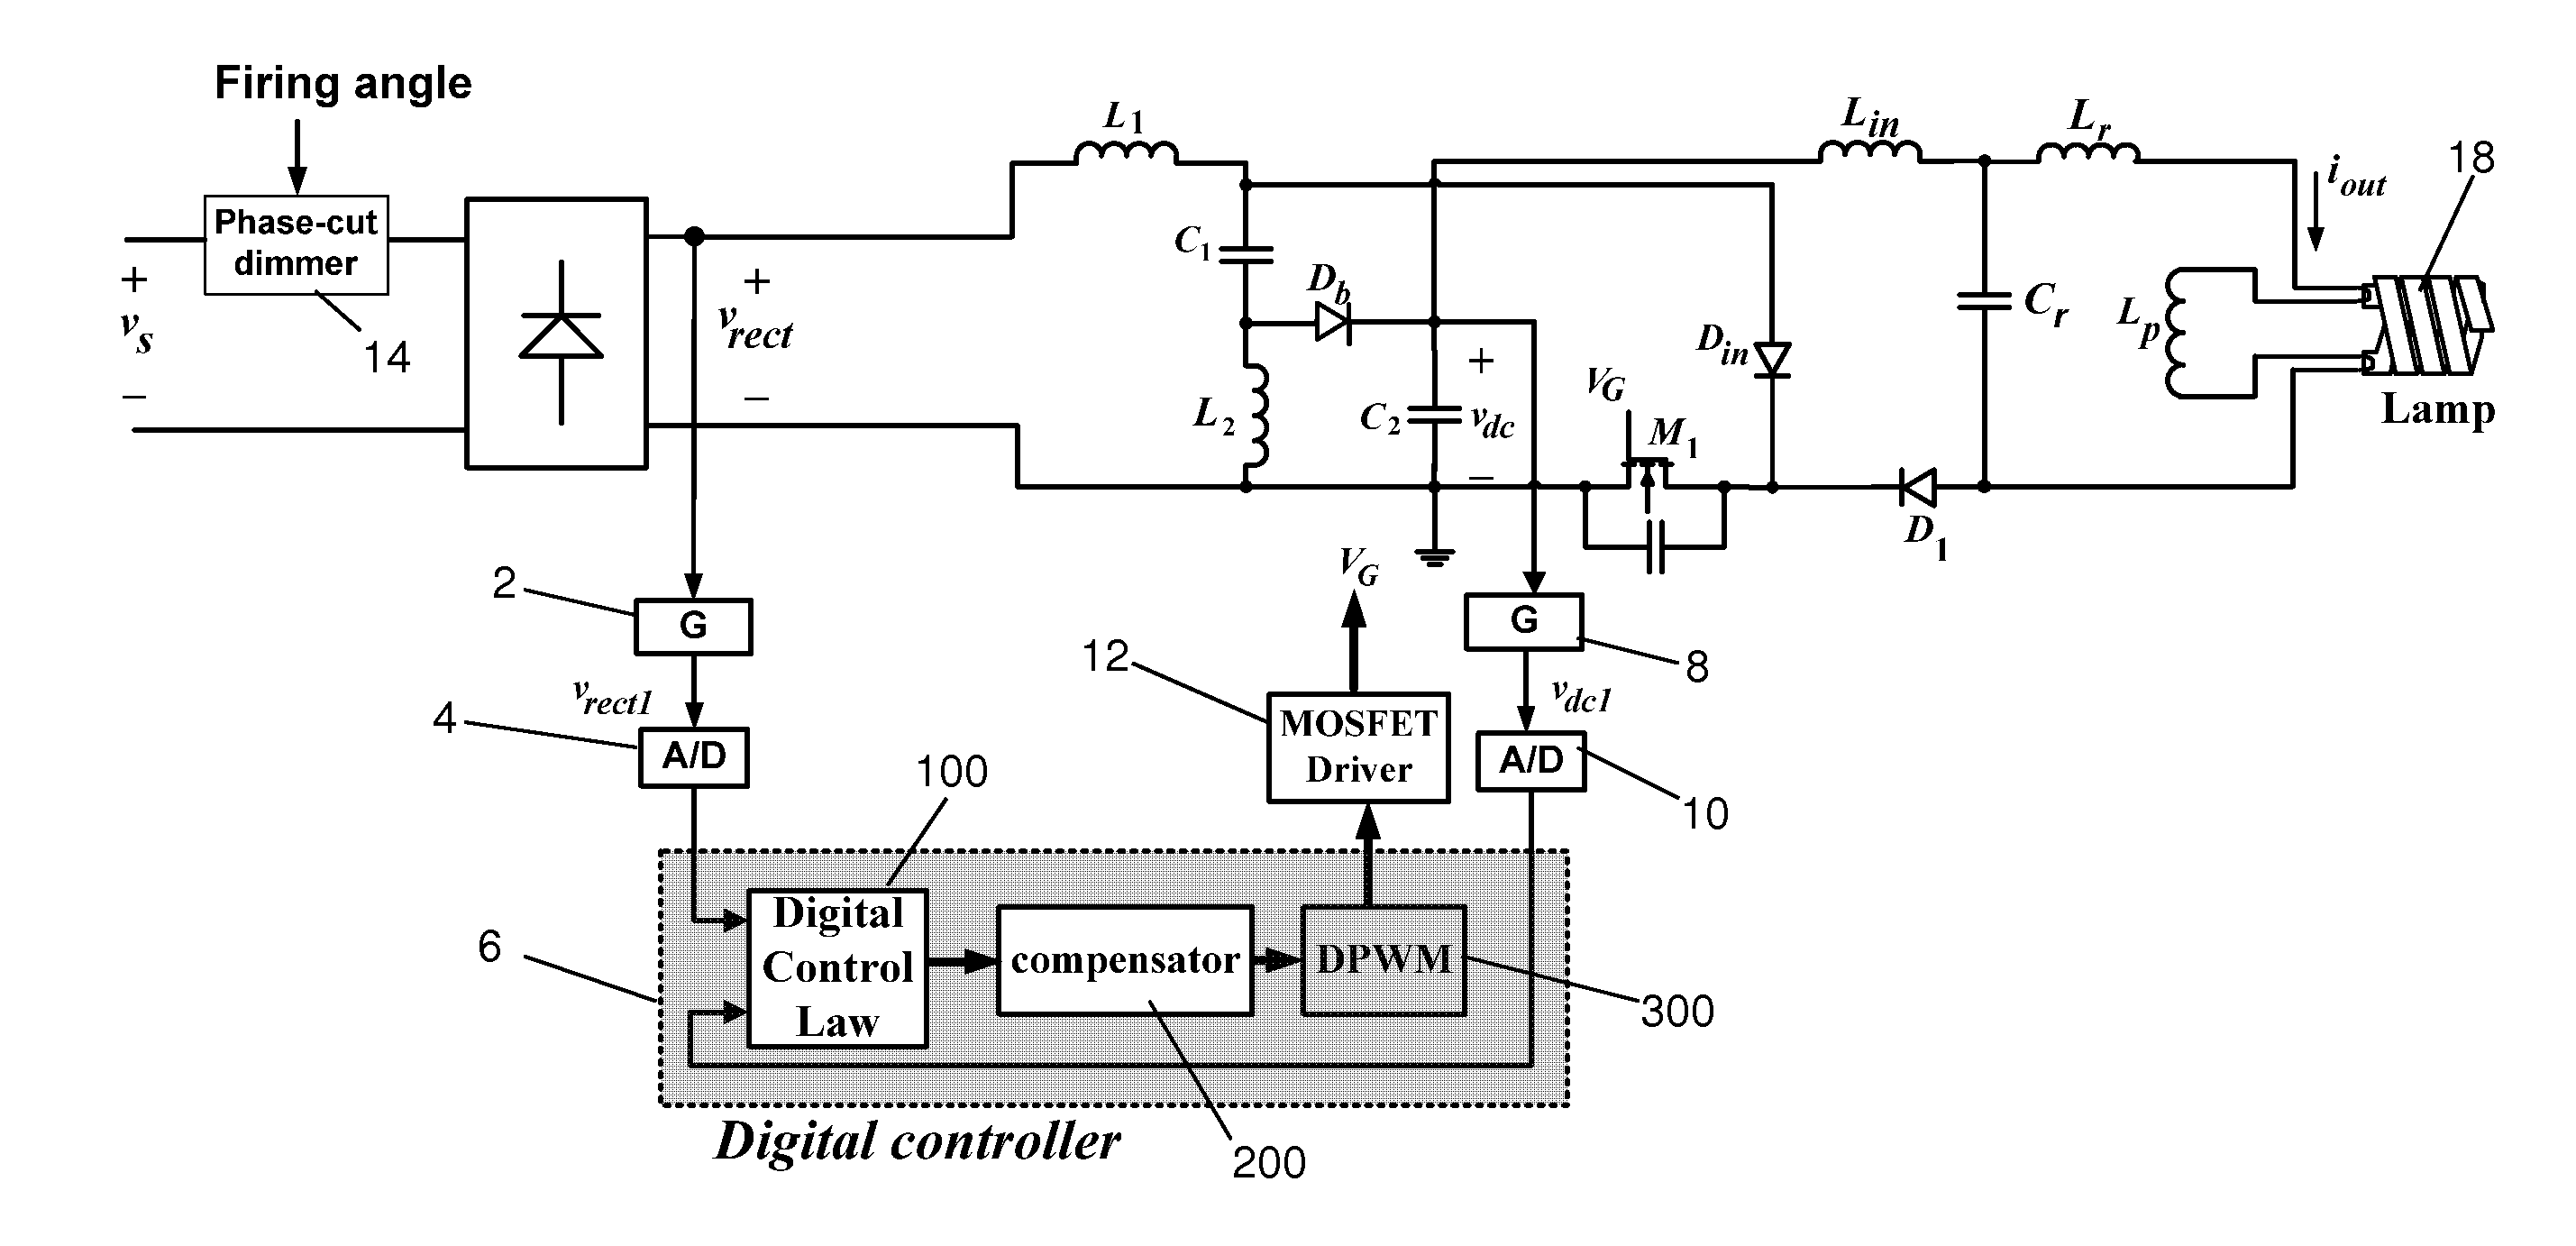 Patent Us20140217917 Digital Controller For An Electronic Ballast Dimmable Circuit Dimming Feature Included Drawing